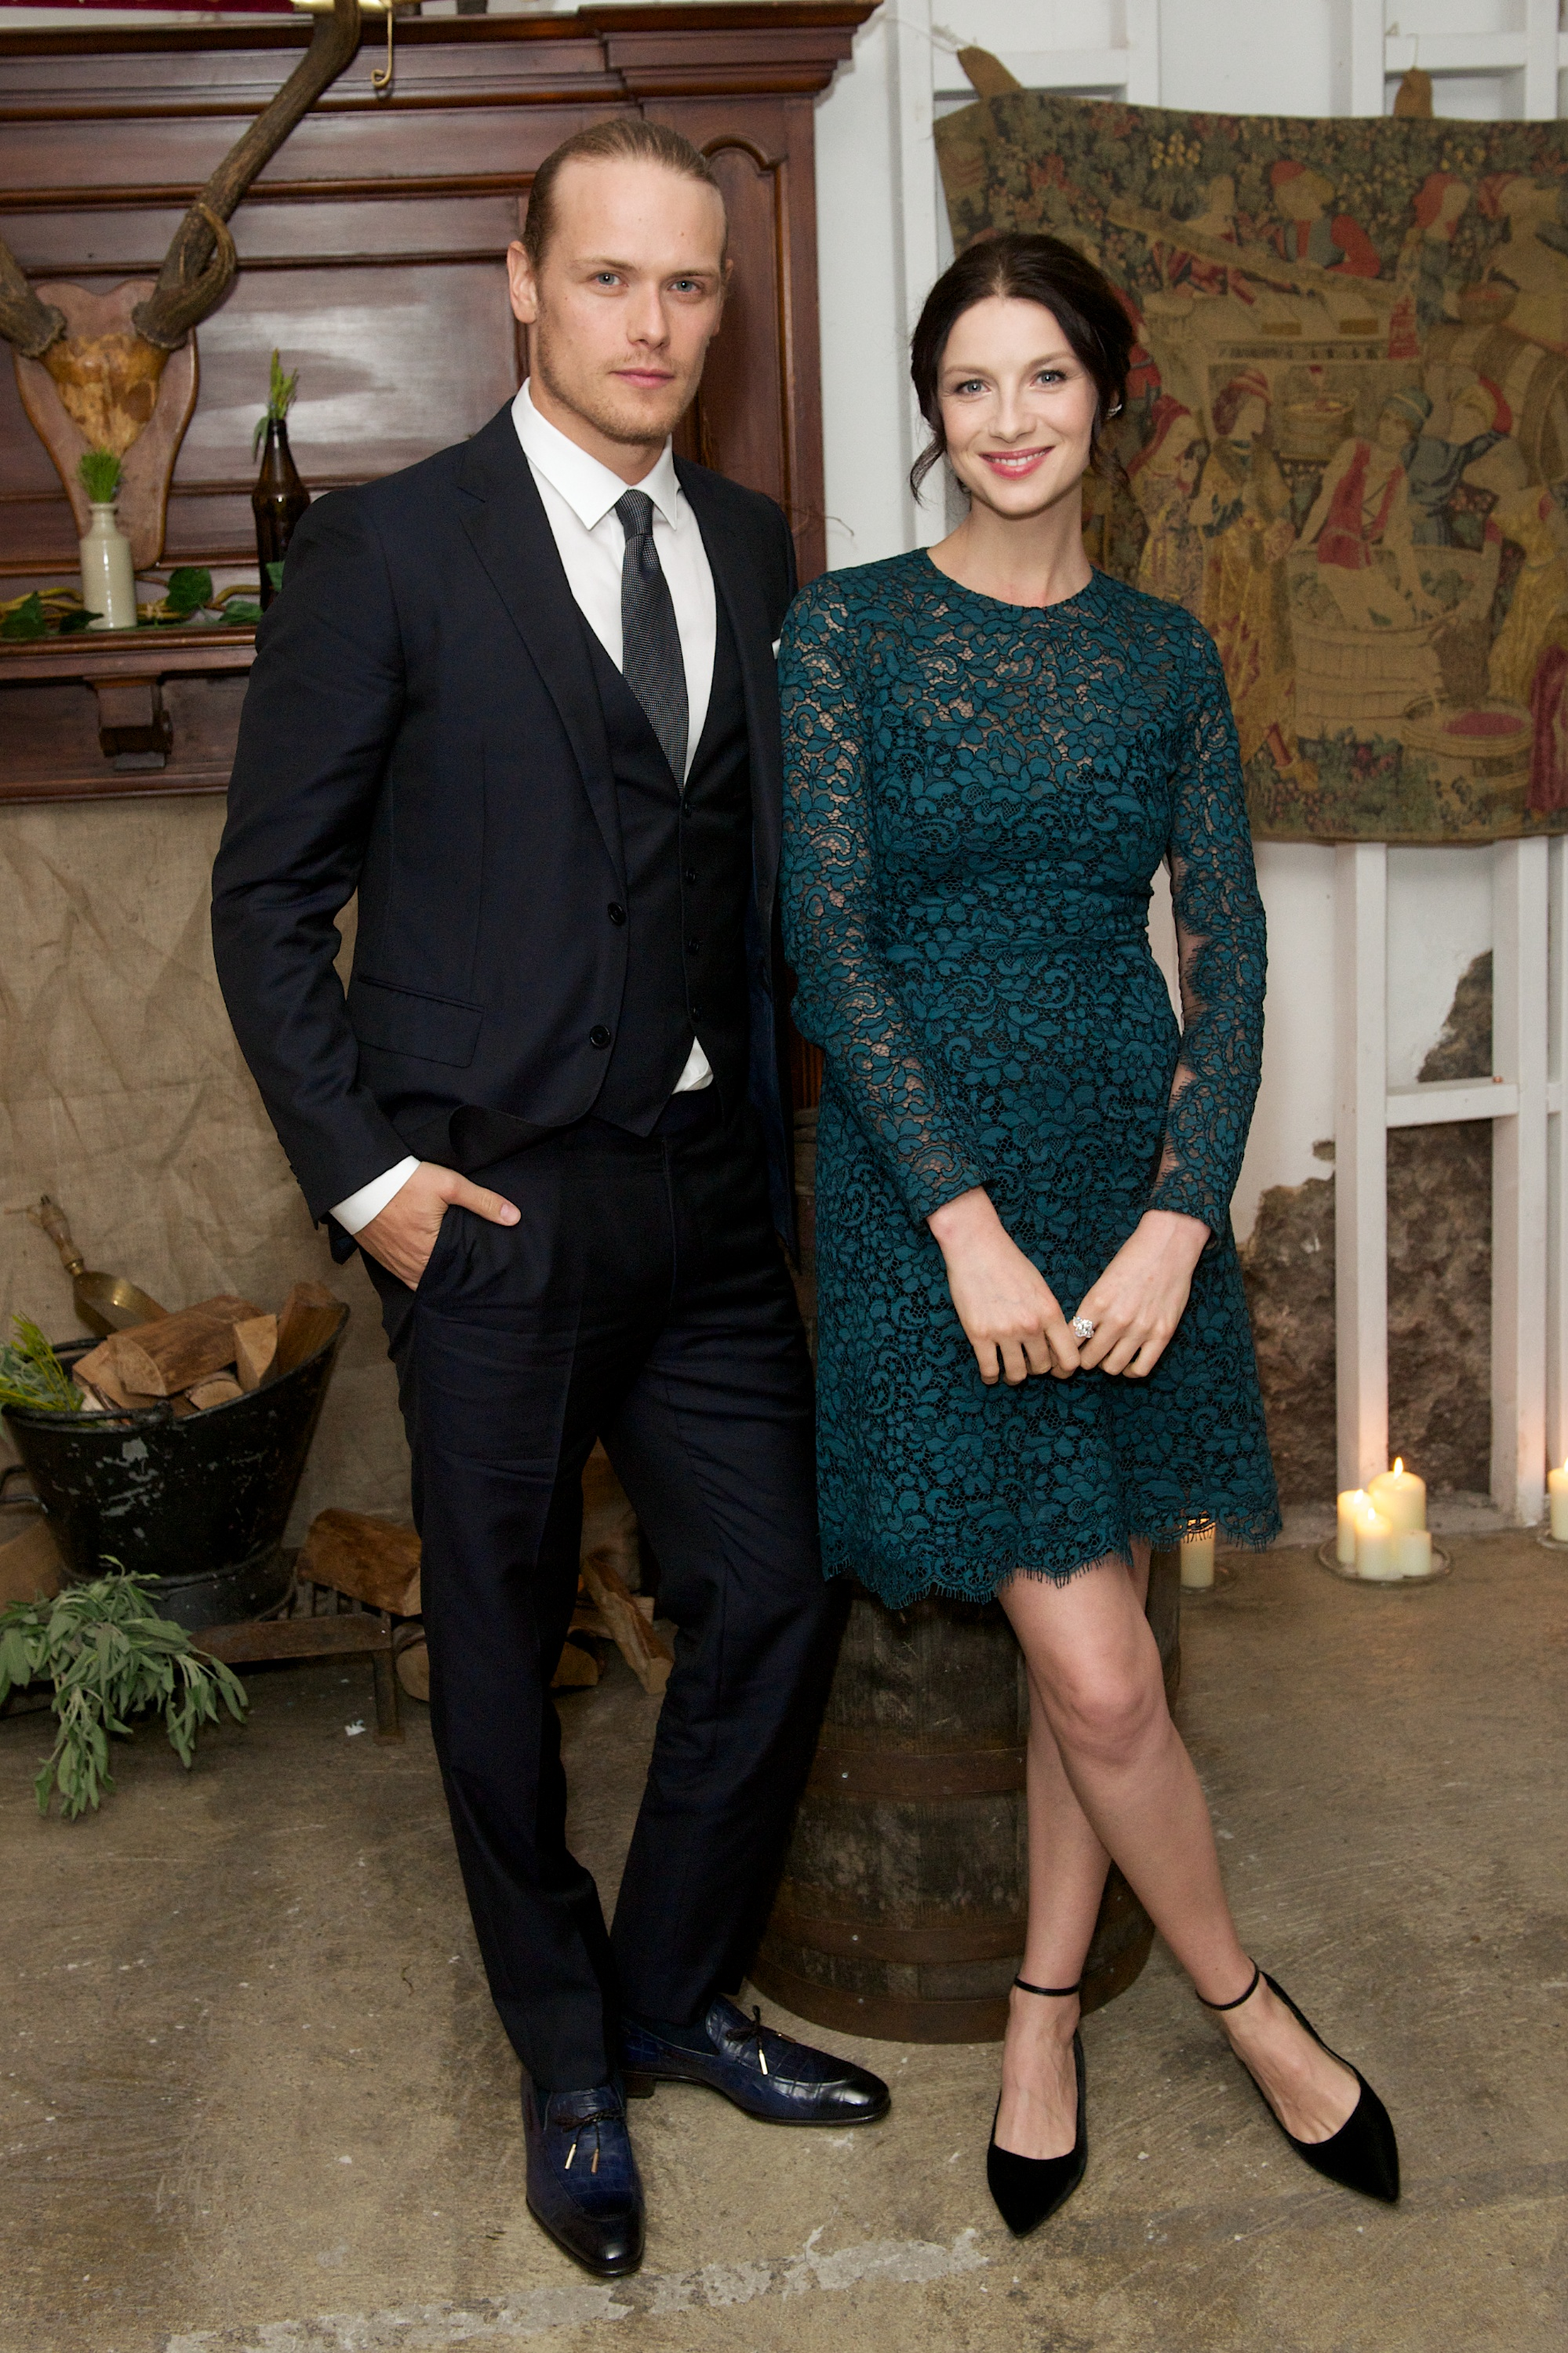 Sam Heughan and caitriona balfe interview